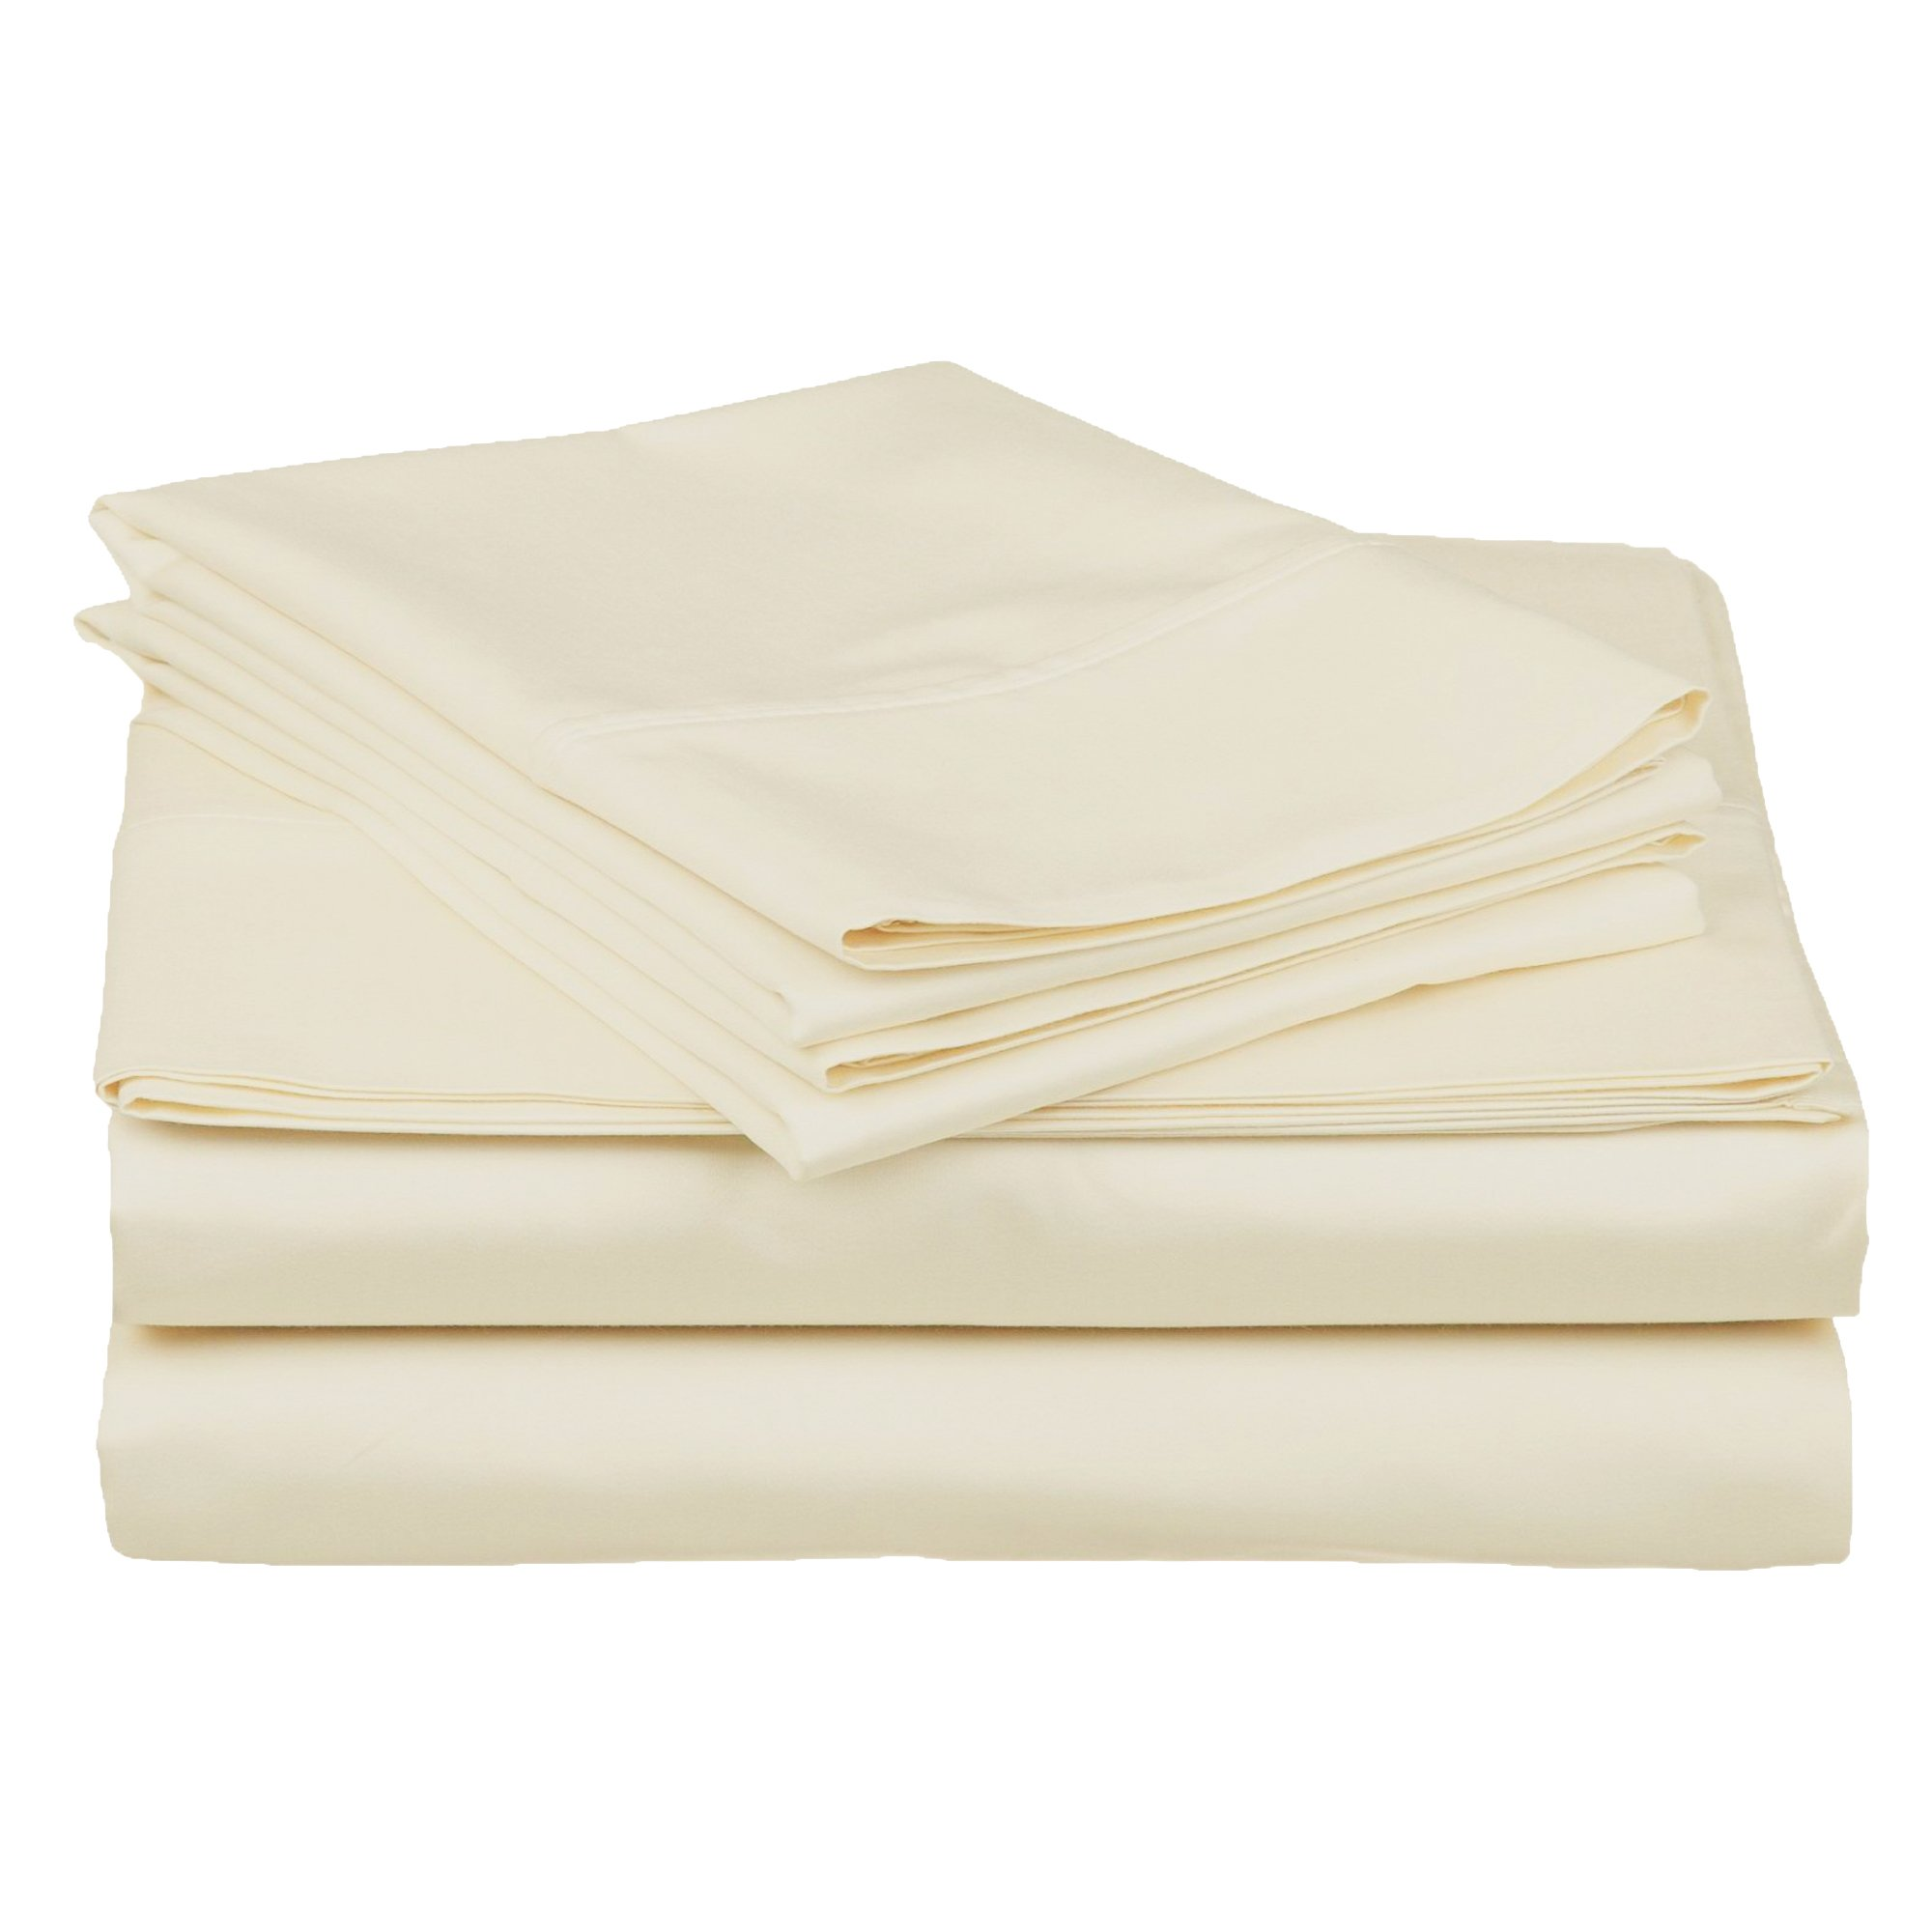 Superior 100% Premium Combed Cotton, Deep-Fitting Pocket Soft and Smooth 4 Piece Sheet and Pillowcase Cover Set, California King - Ivory